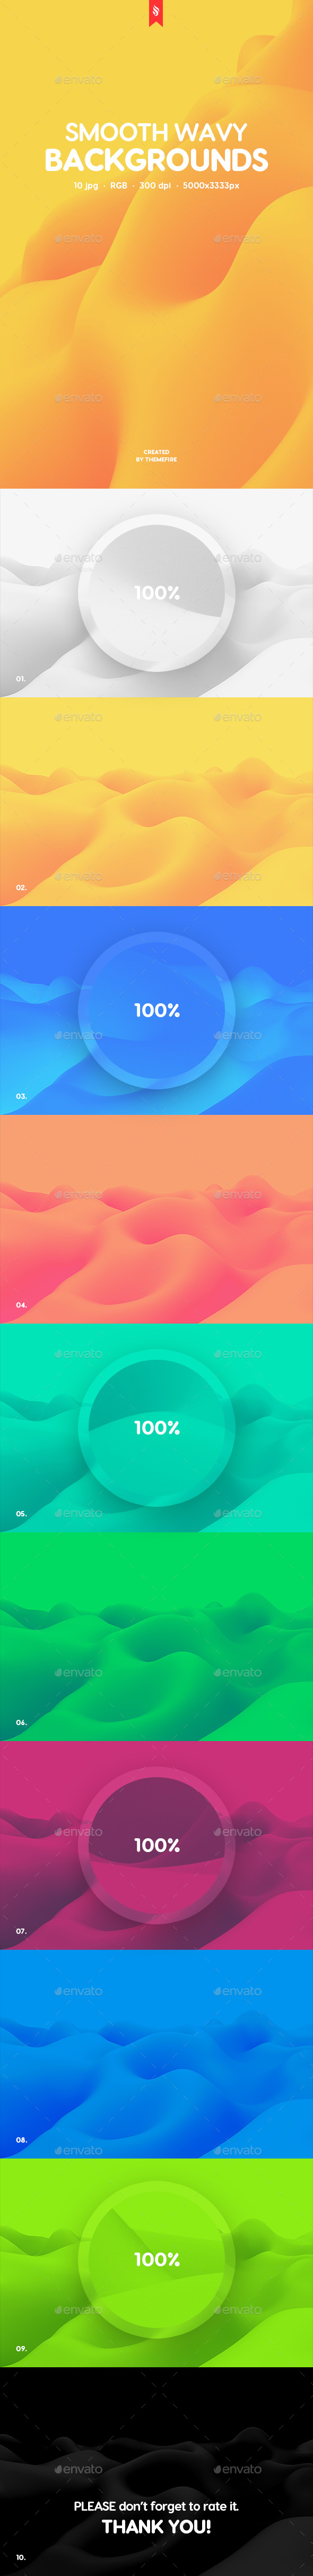 GraphicRiver Smooth Wavy Backgrounds 20343796